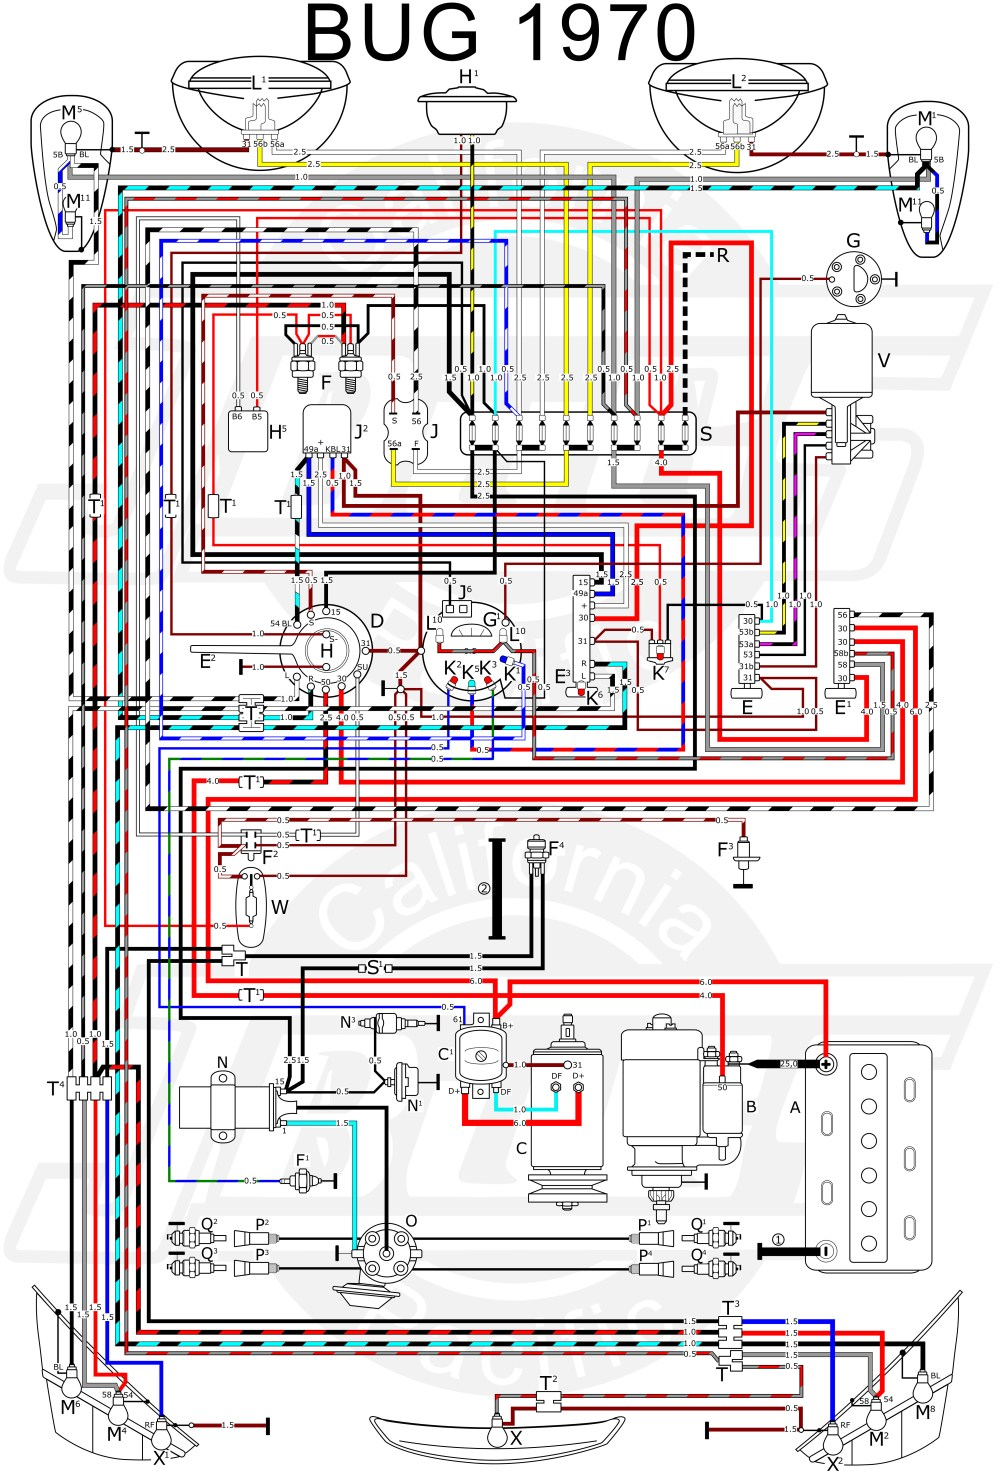 medium resolution of 1971 vw bus wiring carb wiring diagram dat 1971 vw bus wiring carb